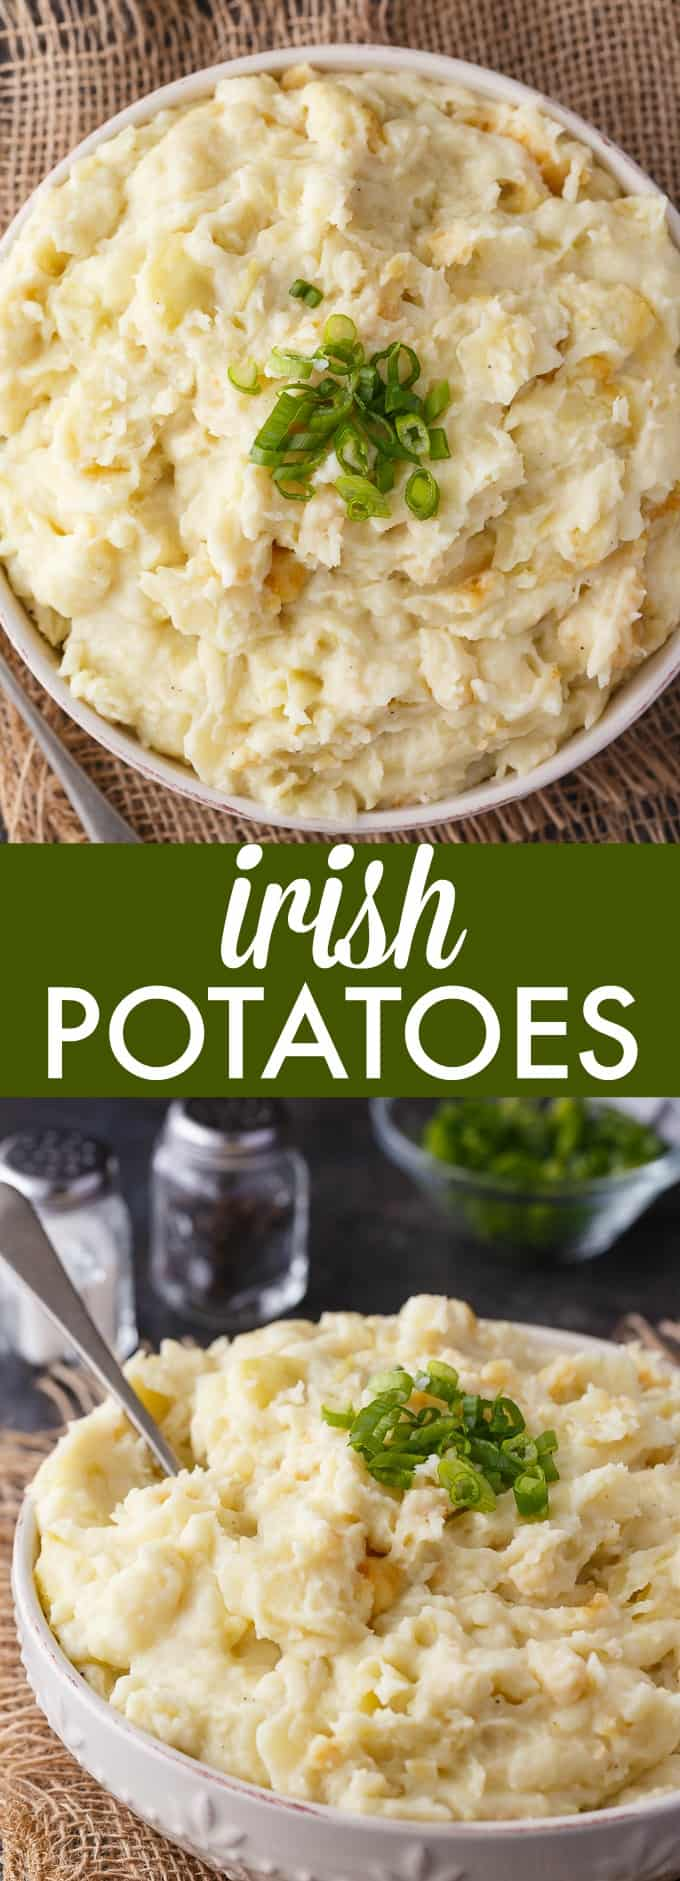 Irish Potatoes - A hearty side dish made with creamy mashed potatoes, garlic and cabbage. Serve for St. Patrick's Day or anytime of year!